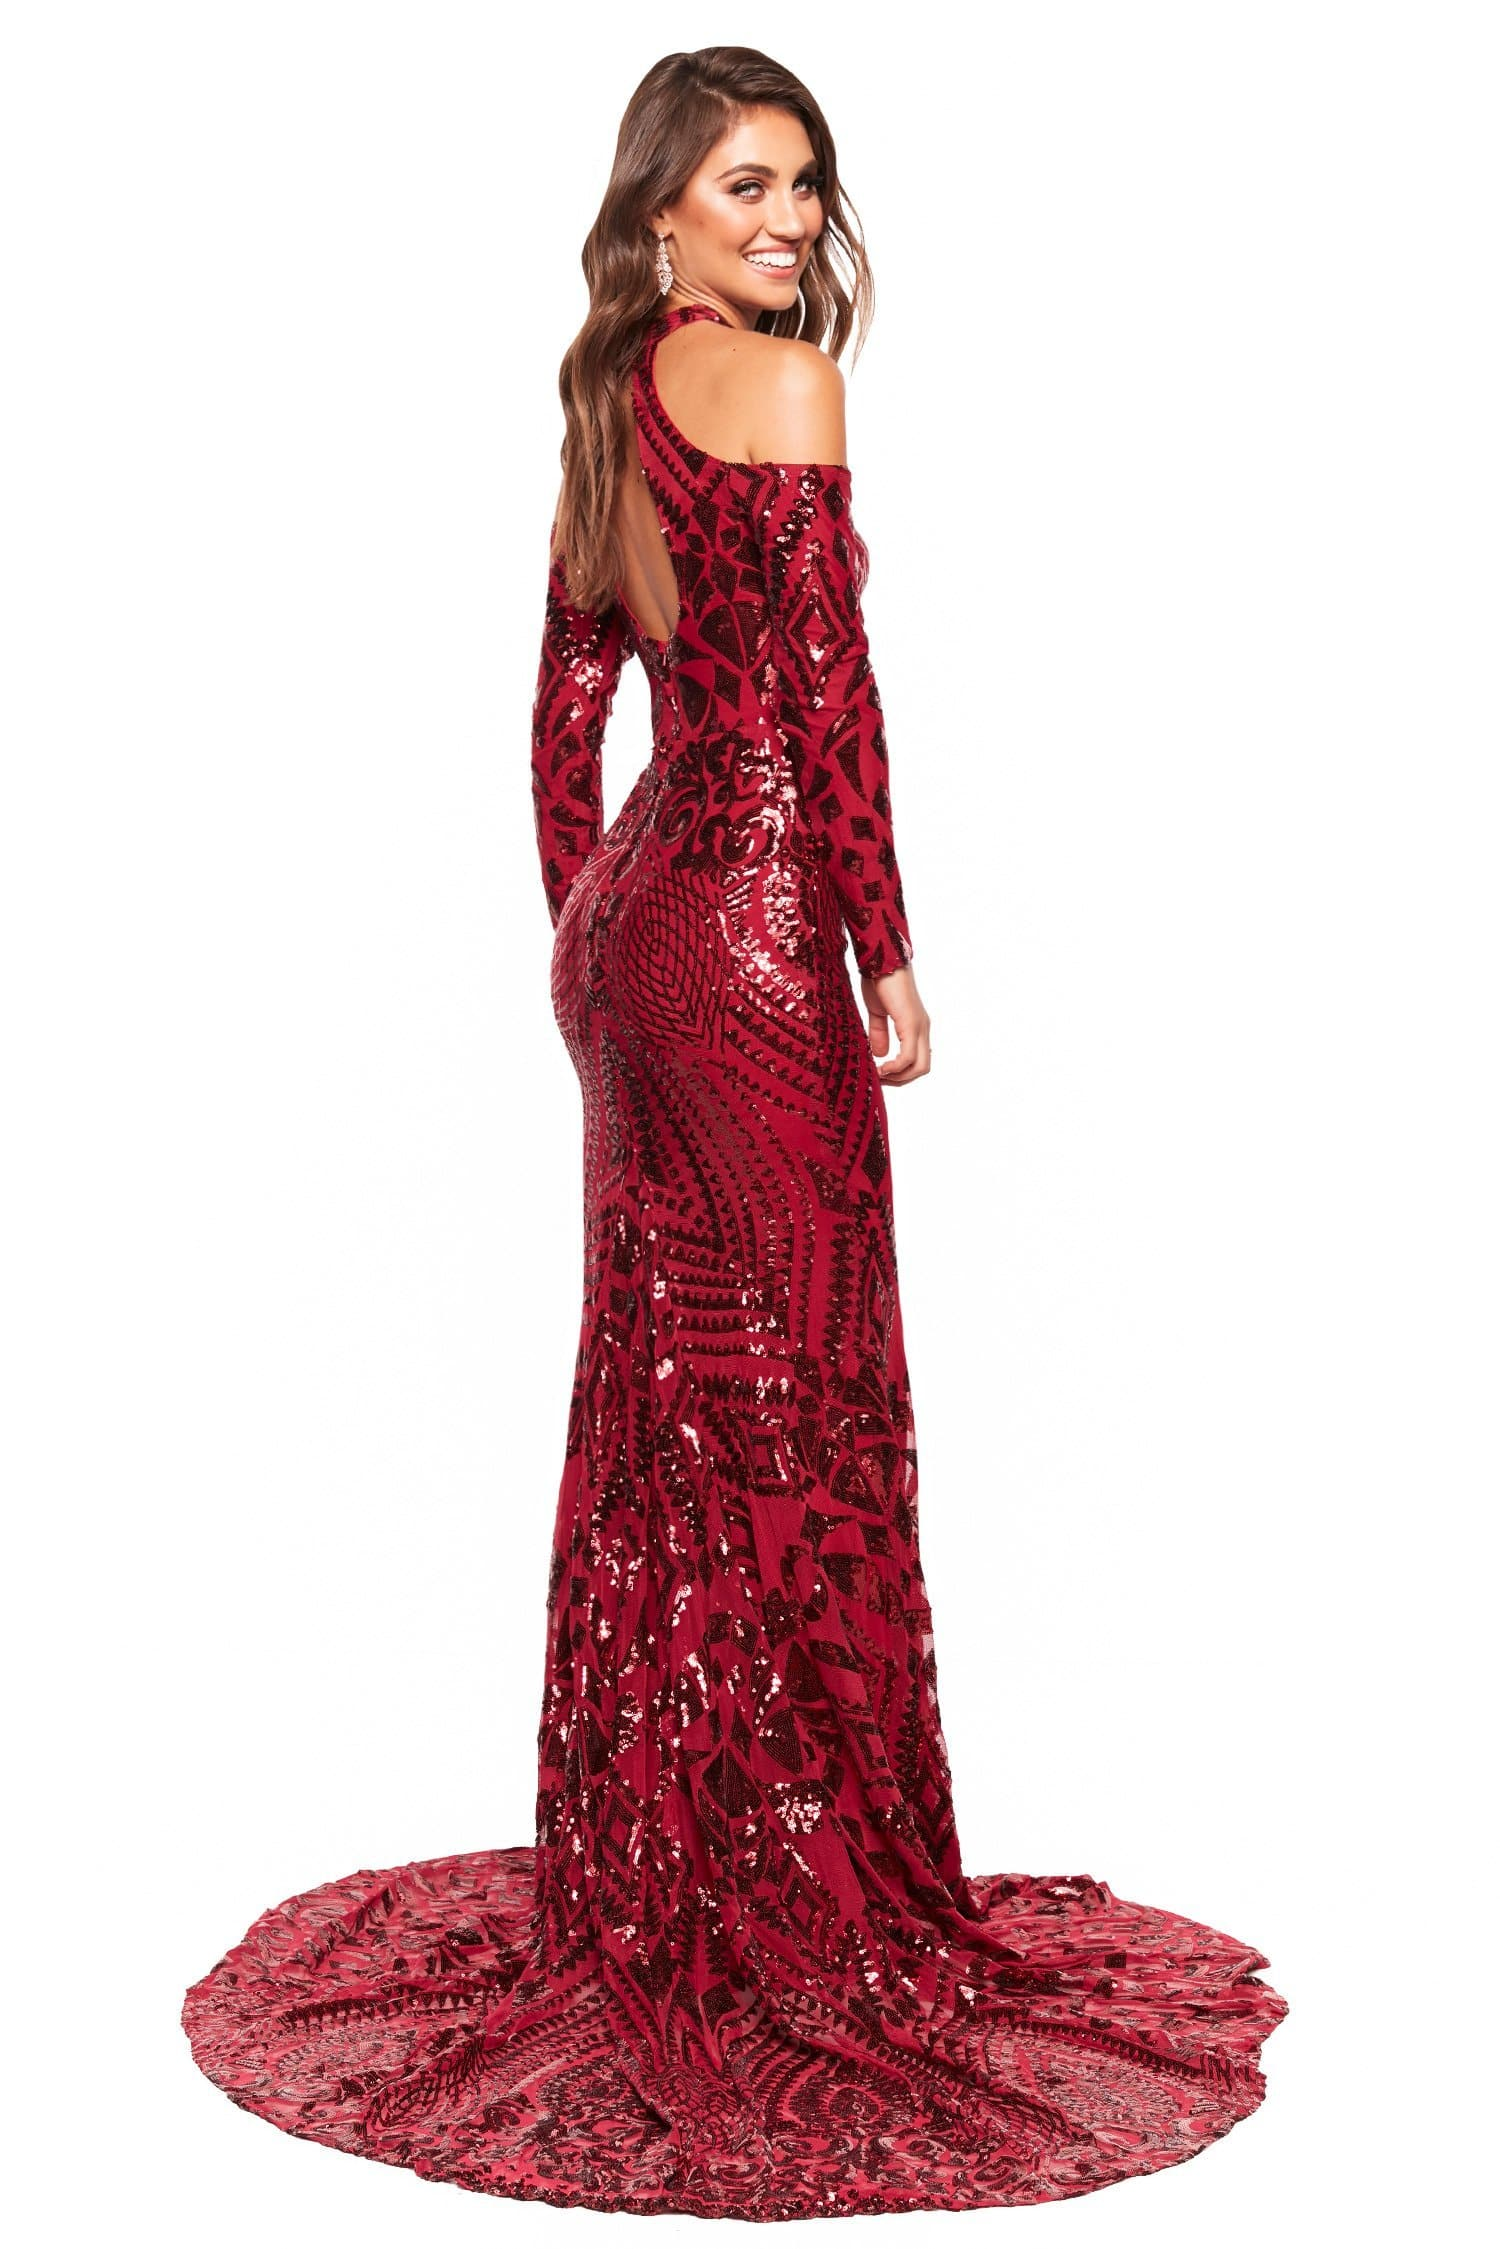 A&N Luxe Sierra - Burgundy Patterned Sequin Gown with Cut Outs